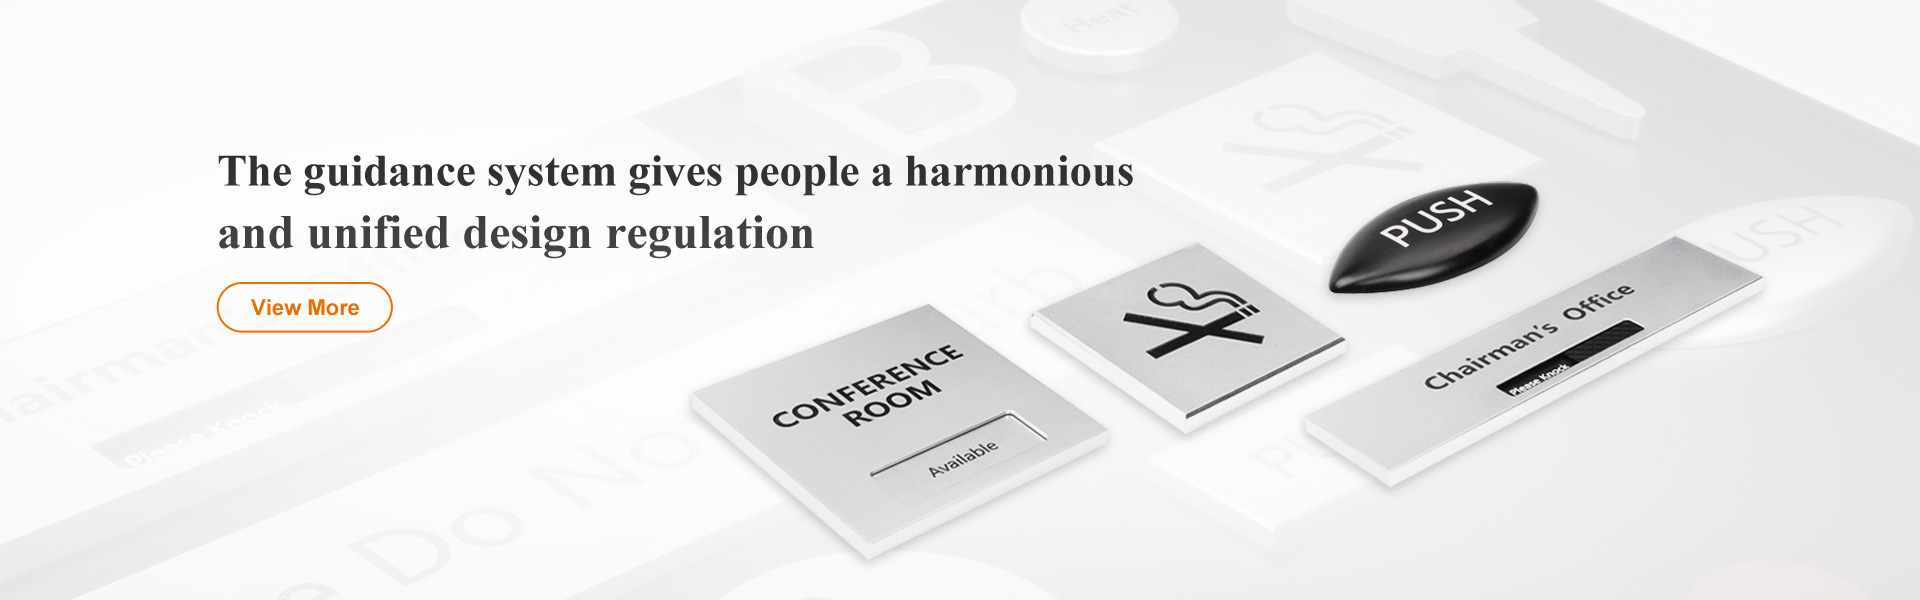 The guidance system gives people a harmonious and unified design regulation